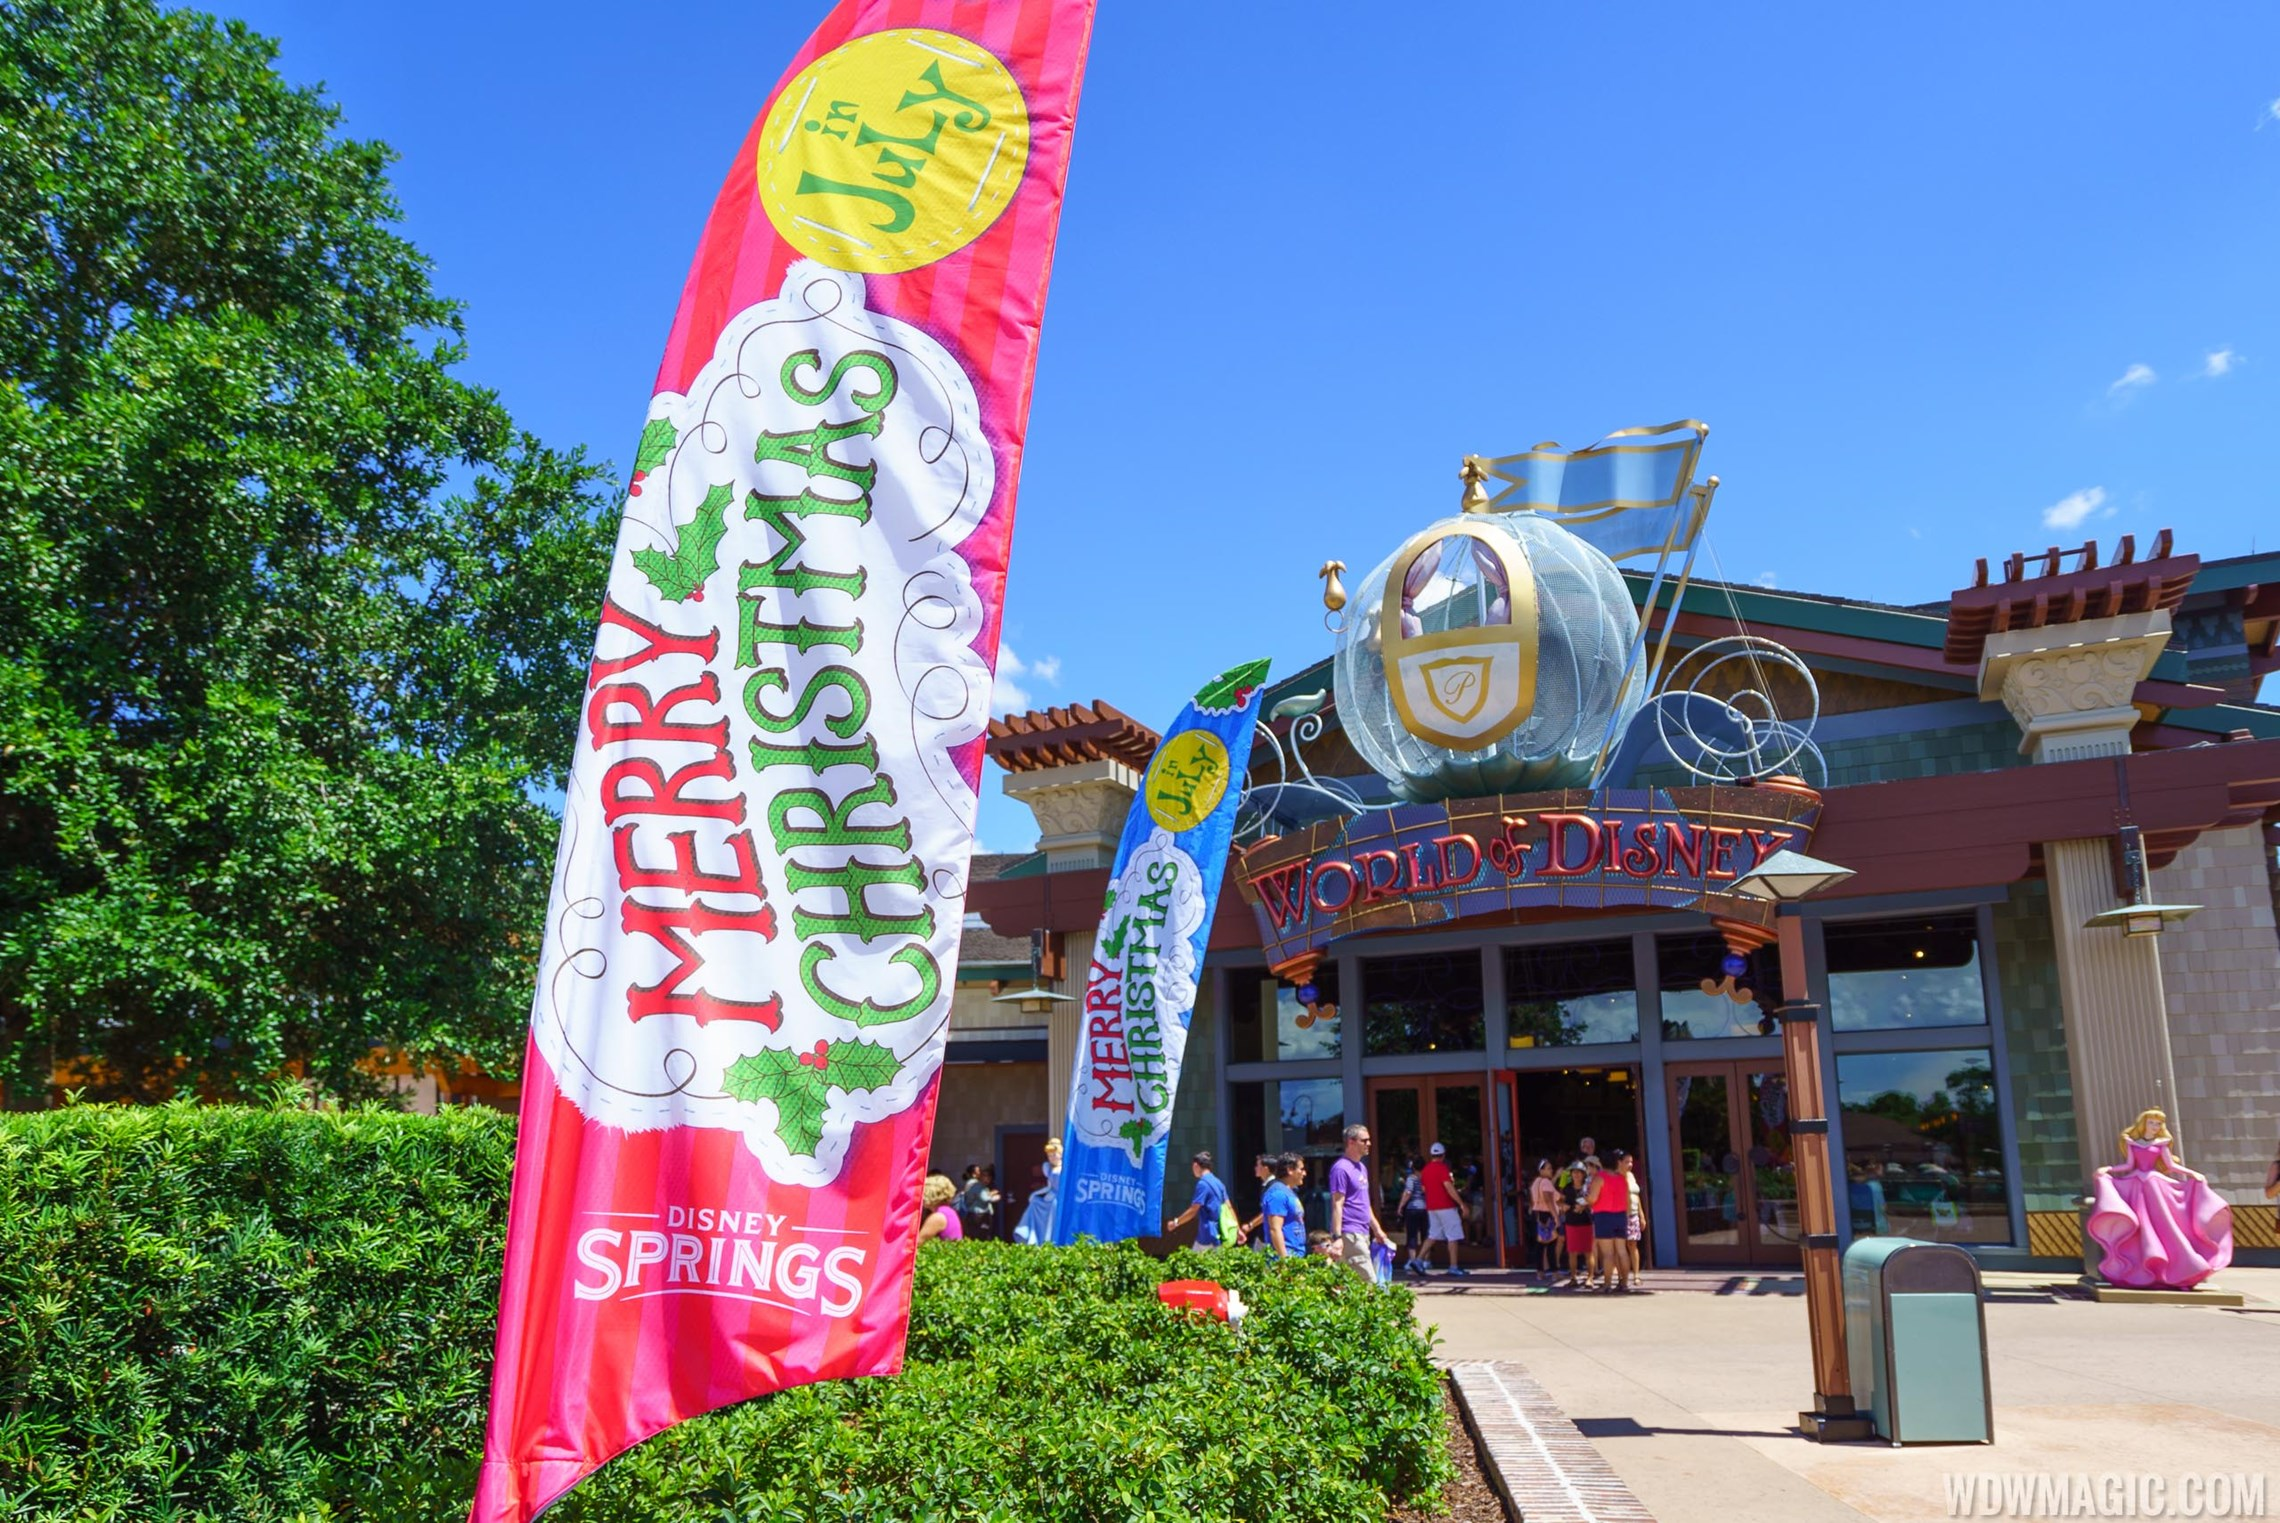 PHOTOS - Christmas in July at Disney Springs